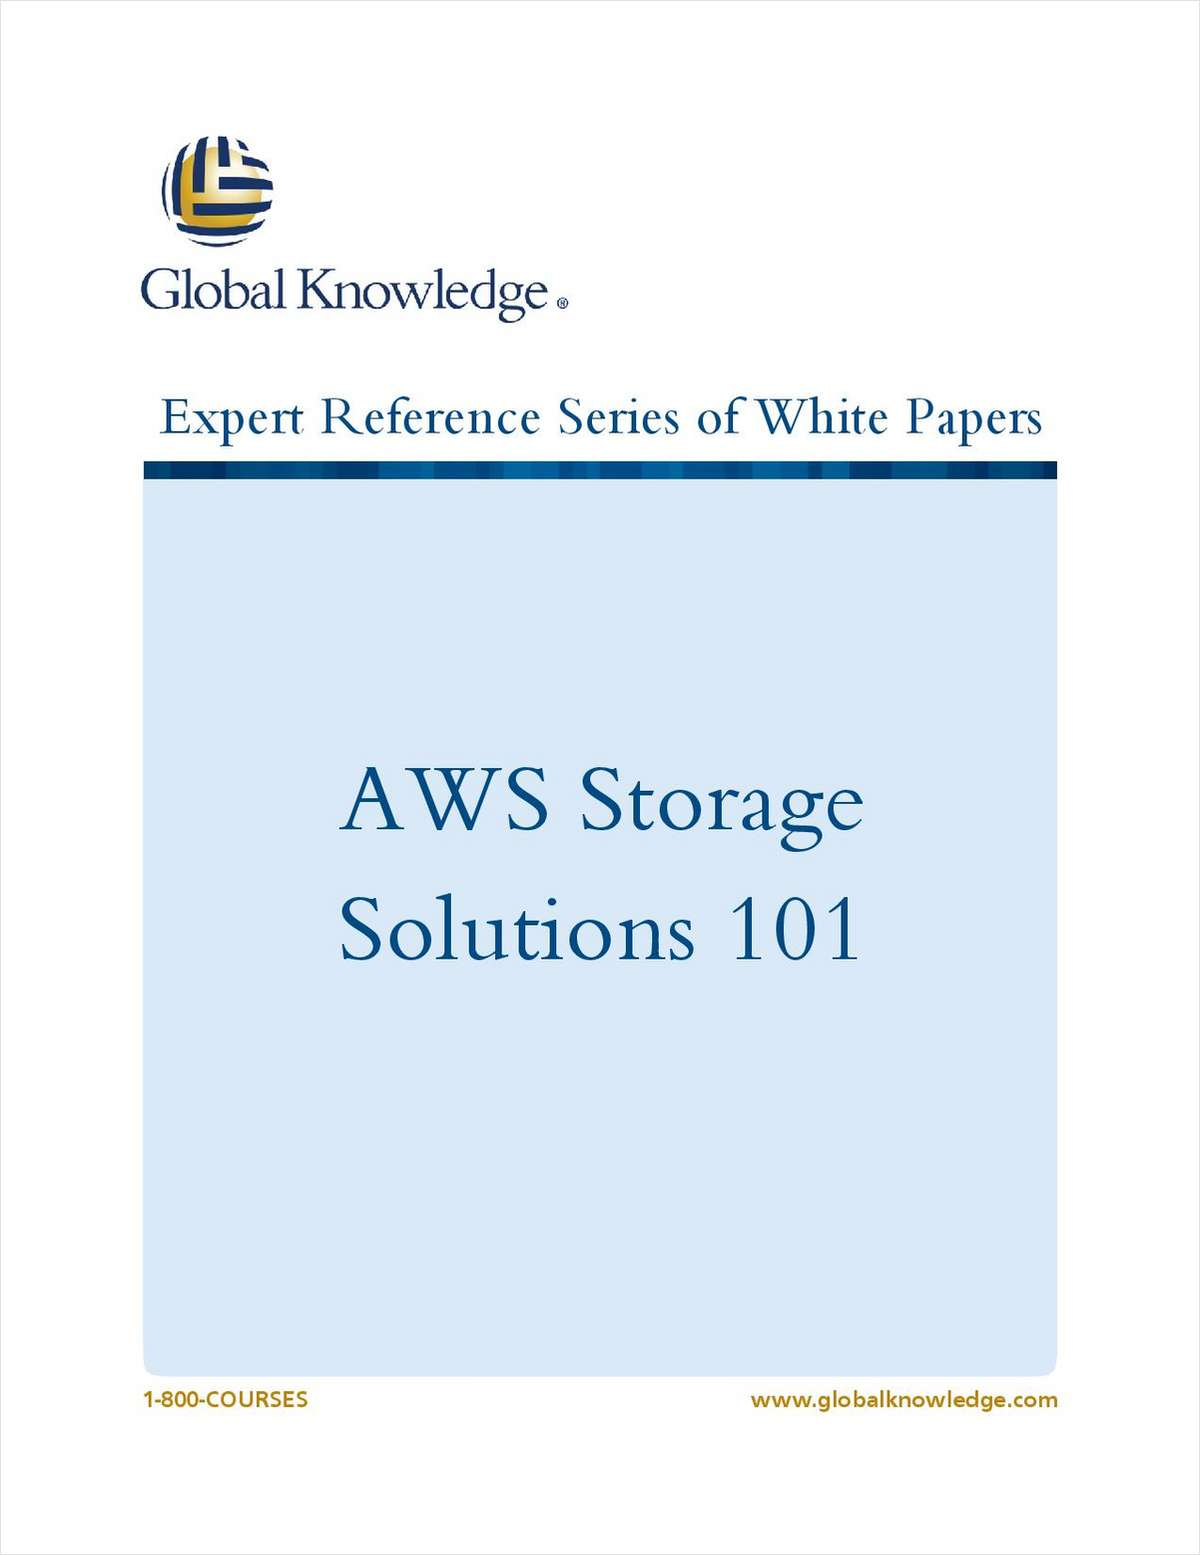 AWS Storage Solutions 101